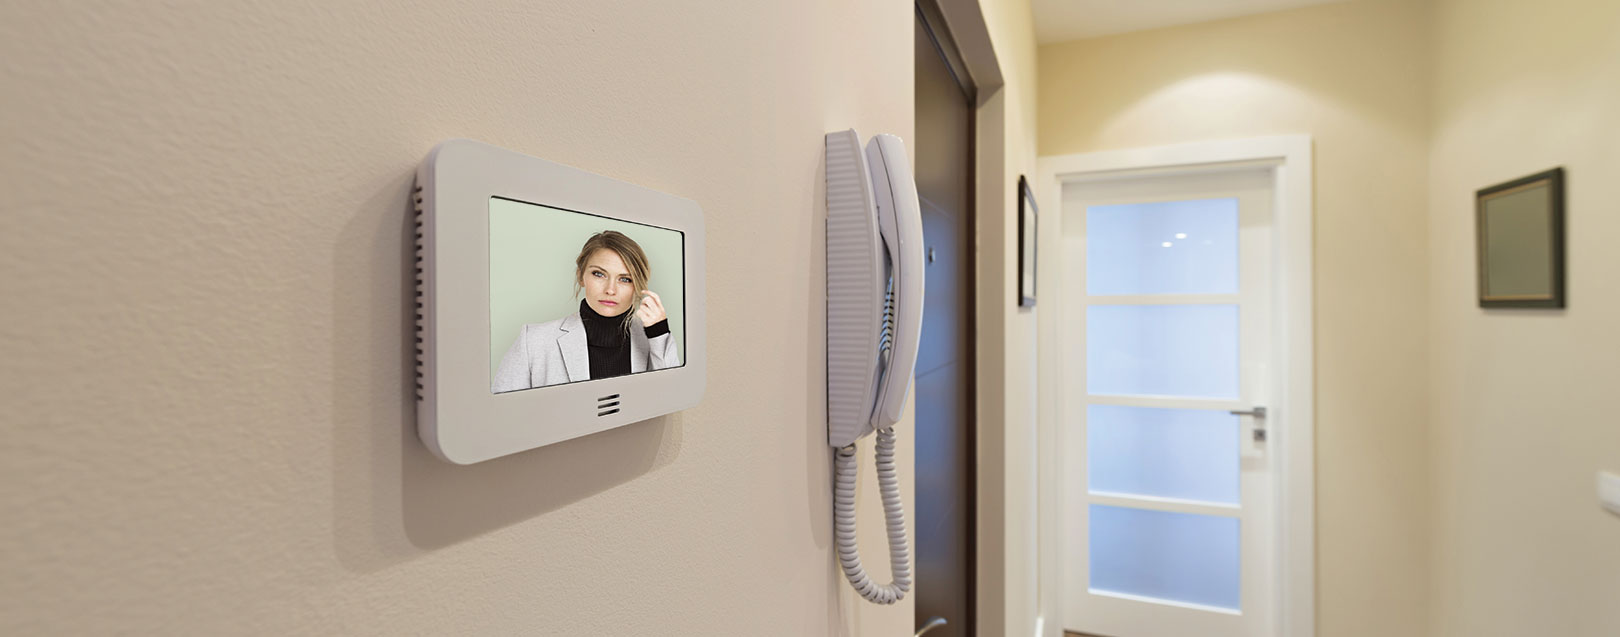 & Video door phones-A SAFE AND SECURE BUSINESS